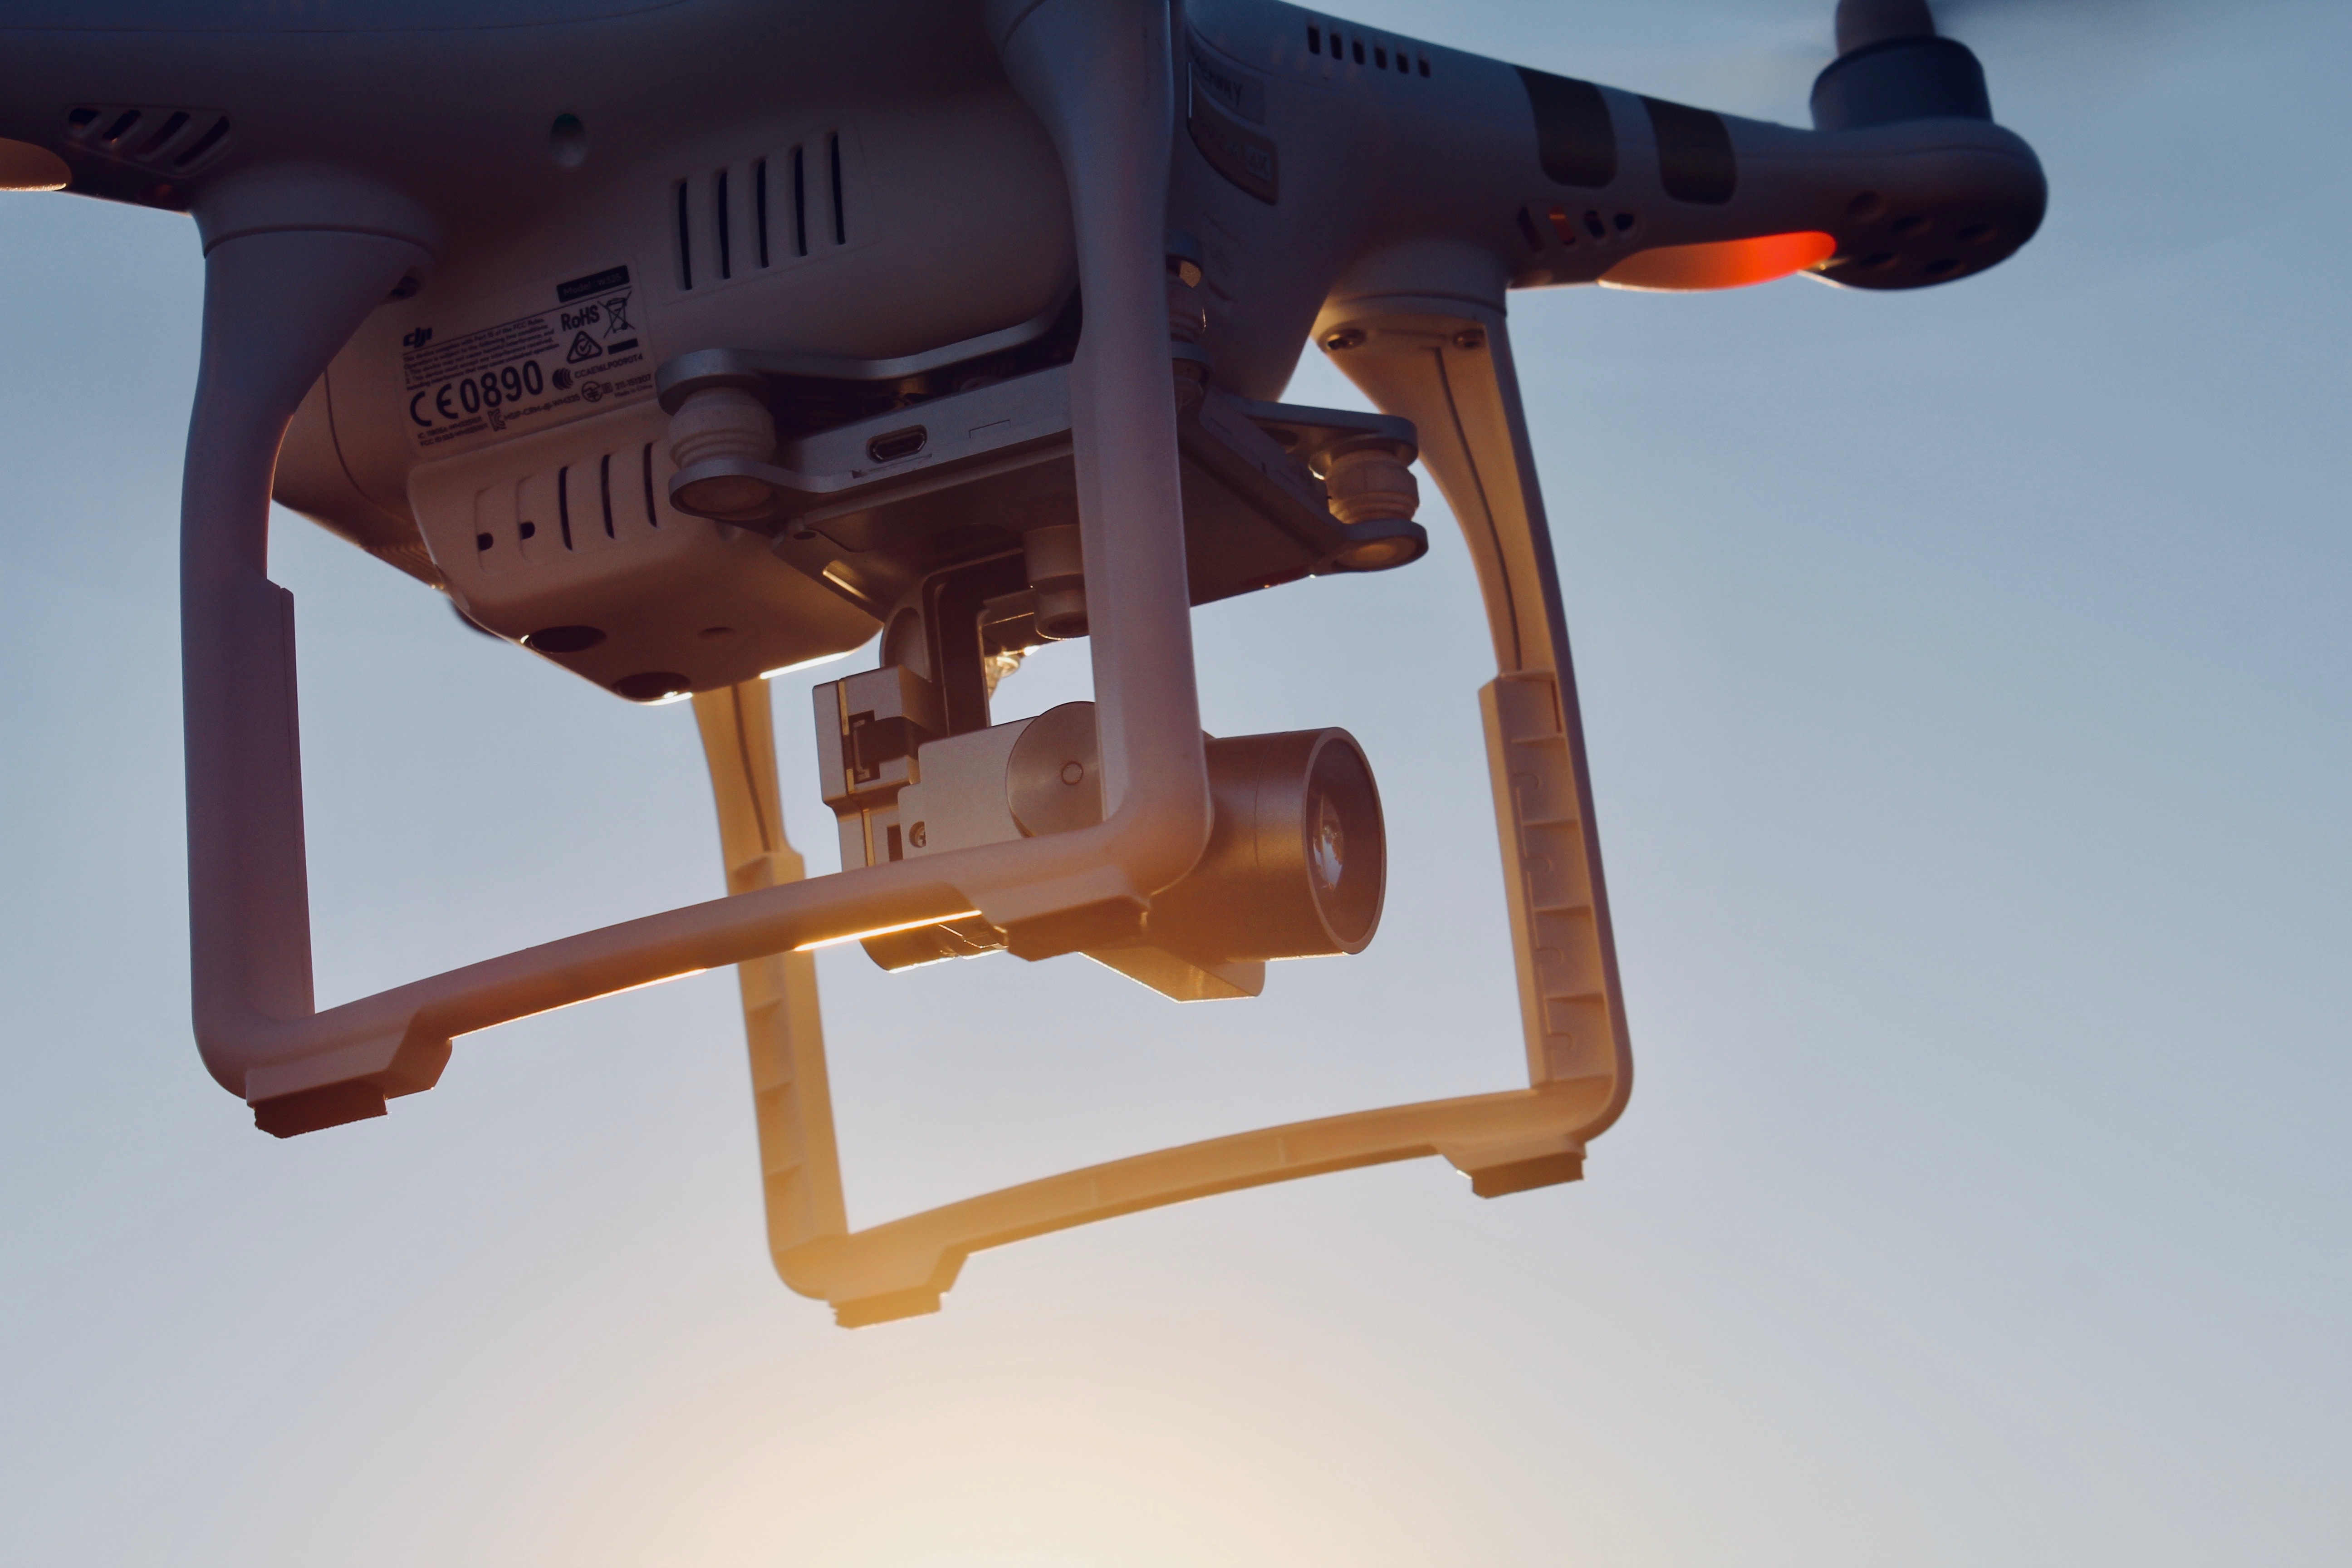 4 ways drones can threaten the confidentiality of your company.